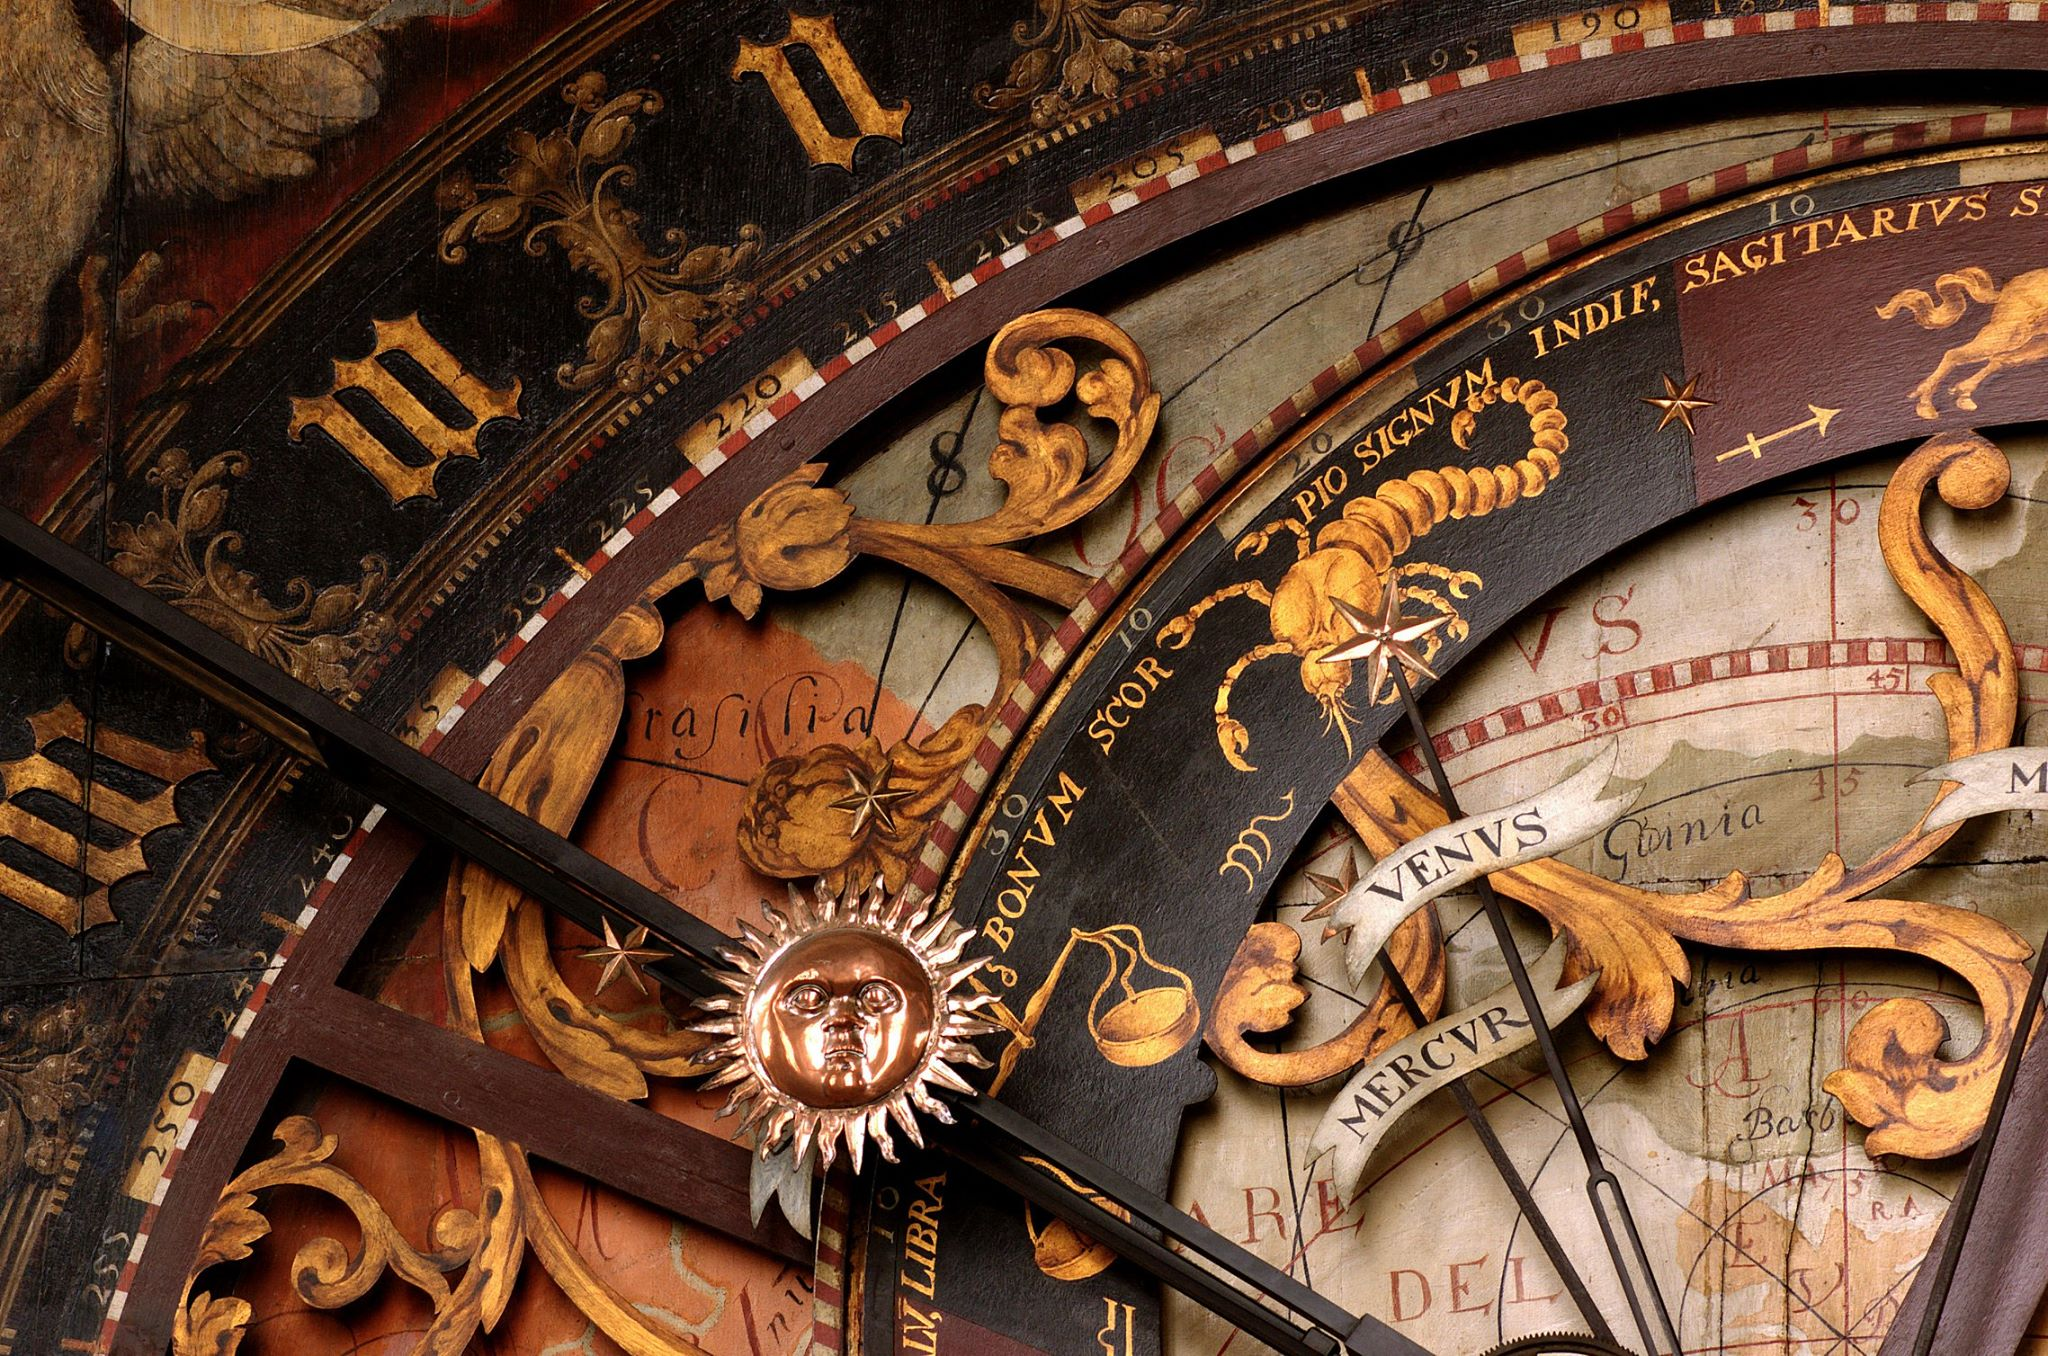 https://ivanets.com/images/astronomical_clock_Germany_Munster_Cathedral.jpg